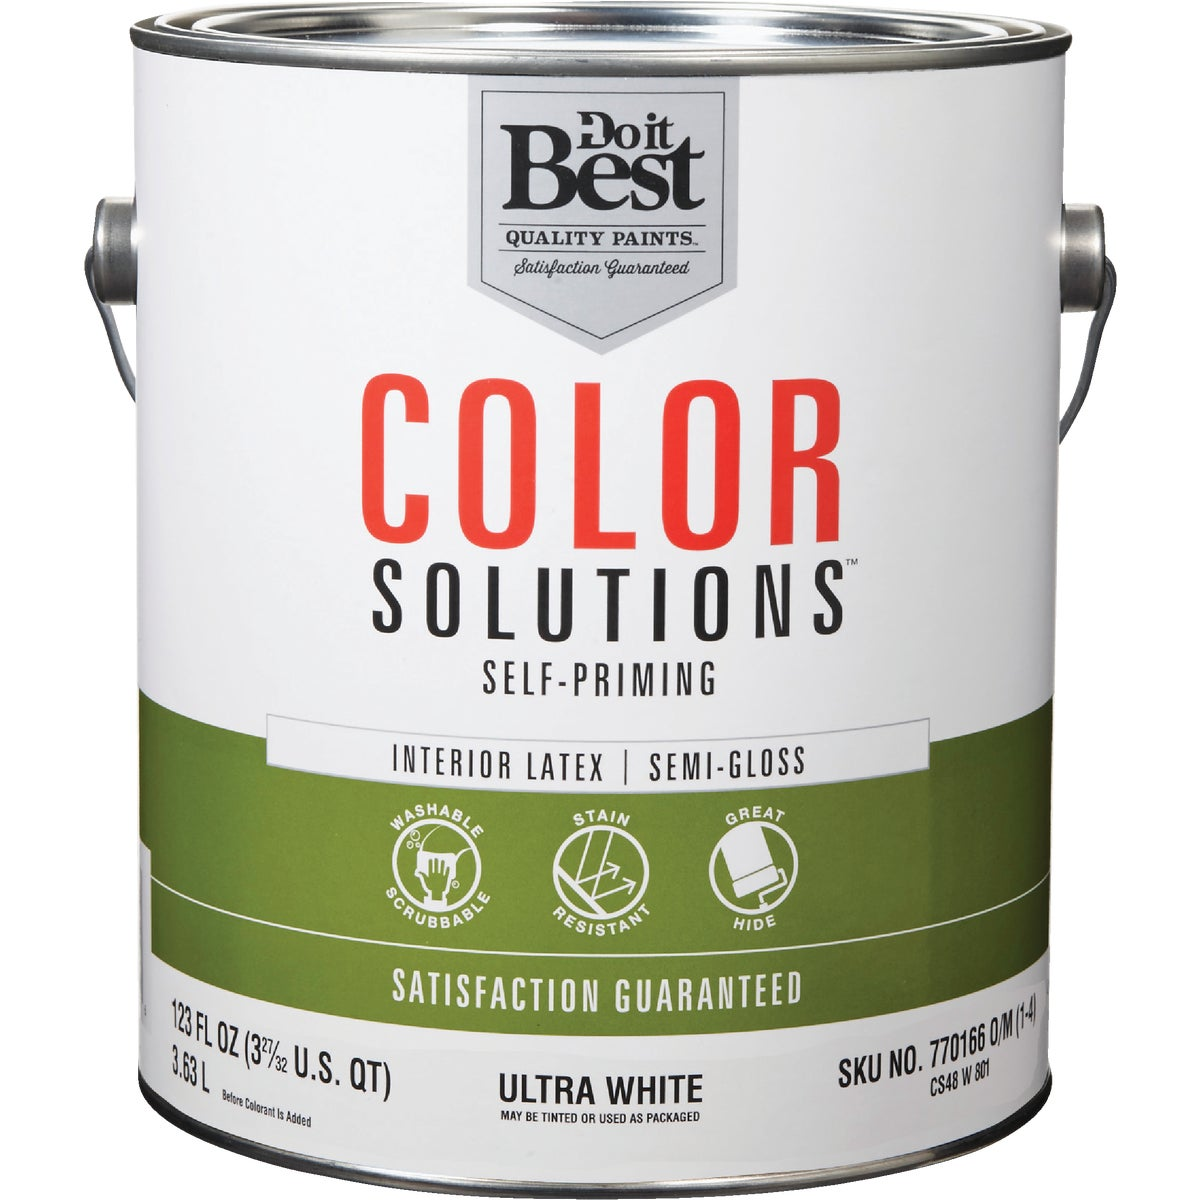 INT S/G ULTRA WHT PAINT - CS48W0801-16 by Do it Best